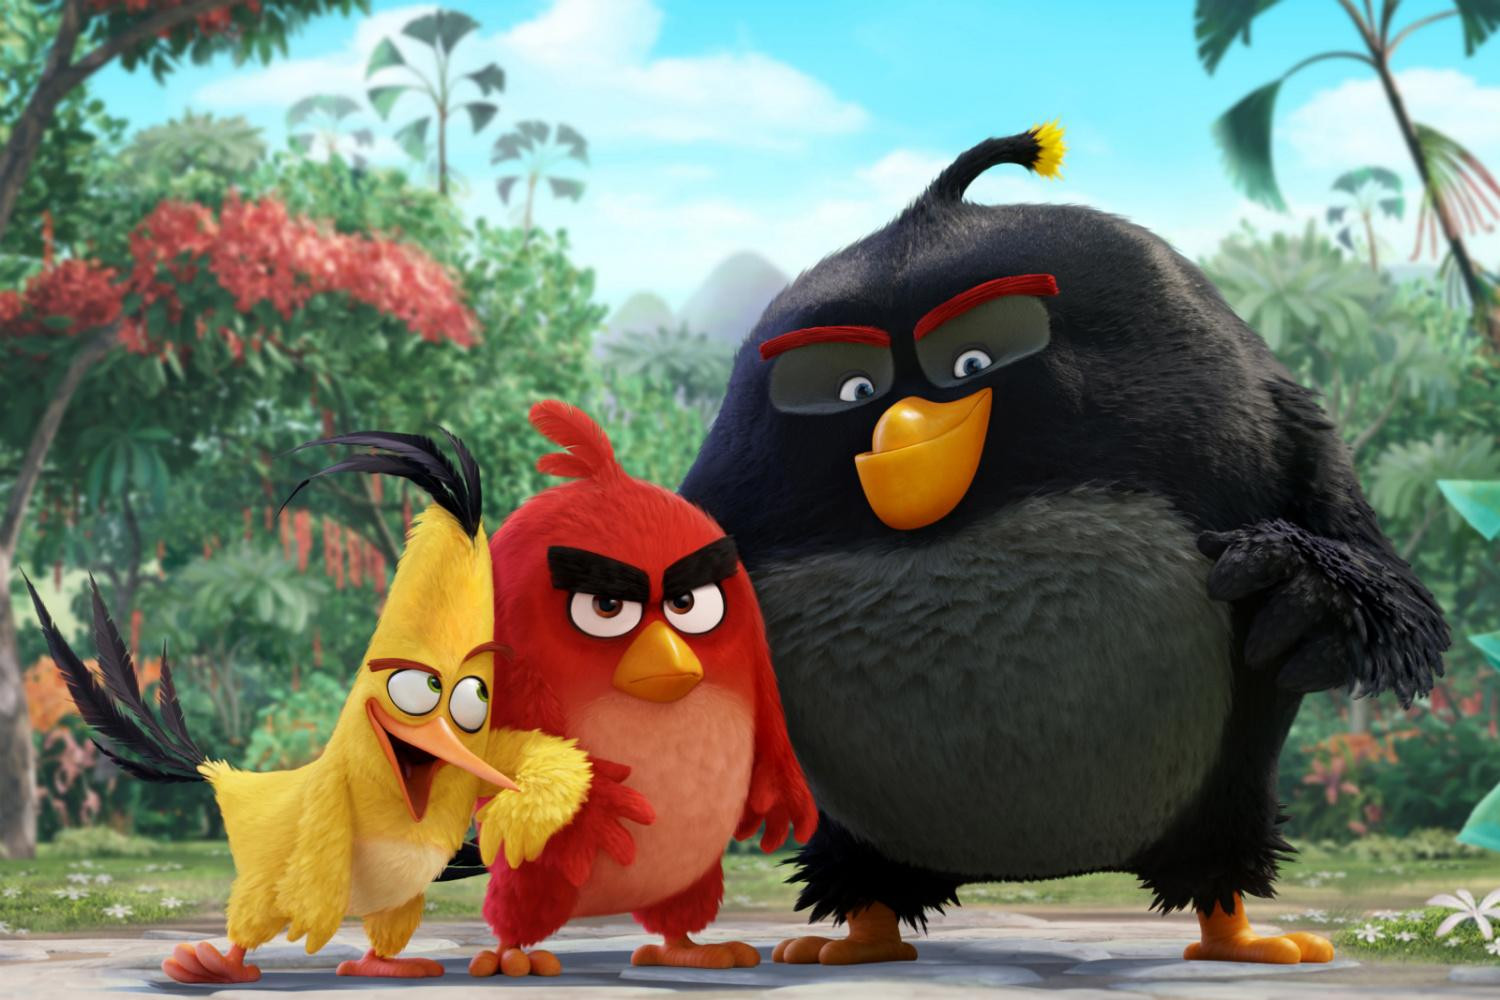 Angry Birds is the number one movie in America, but not by much